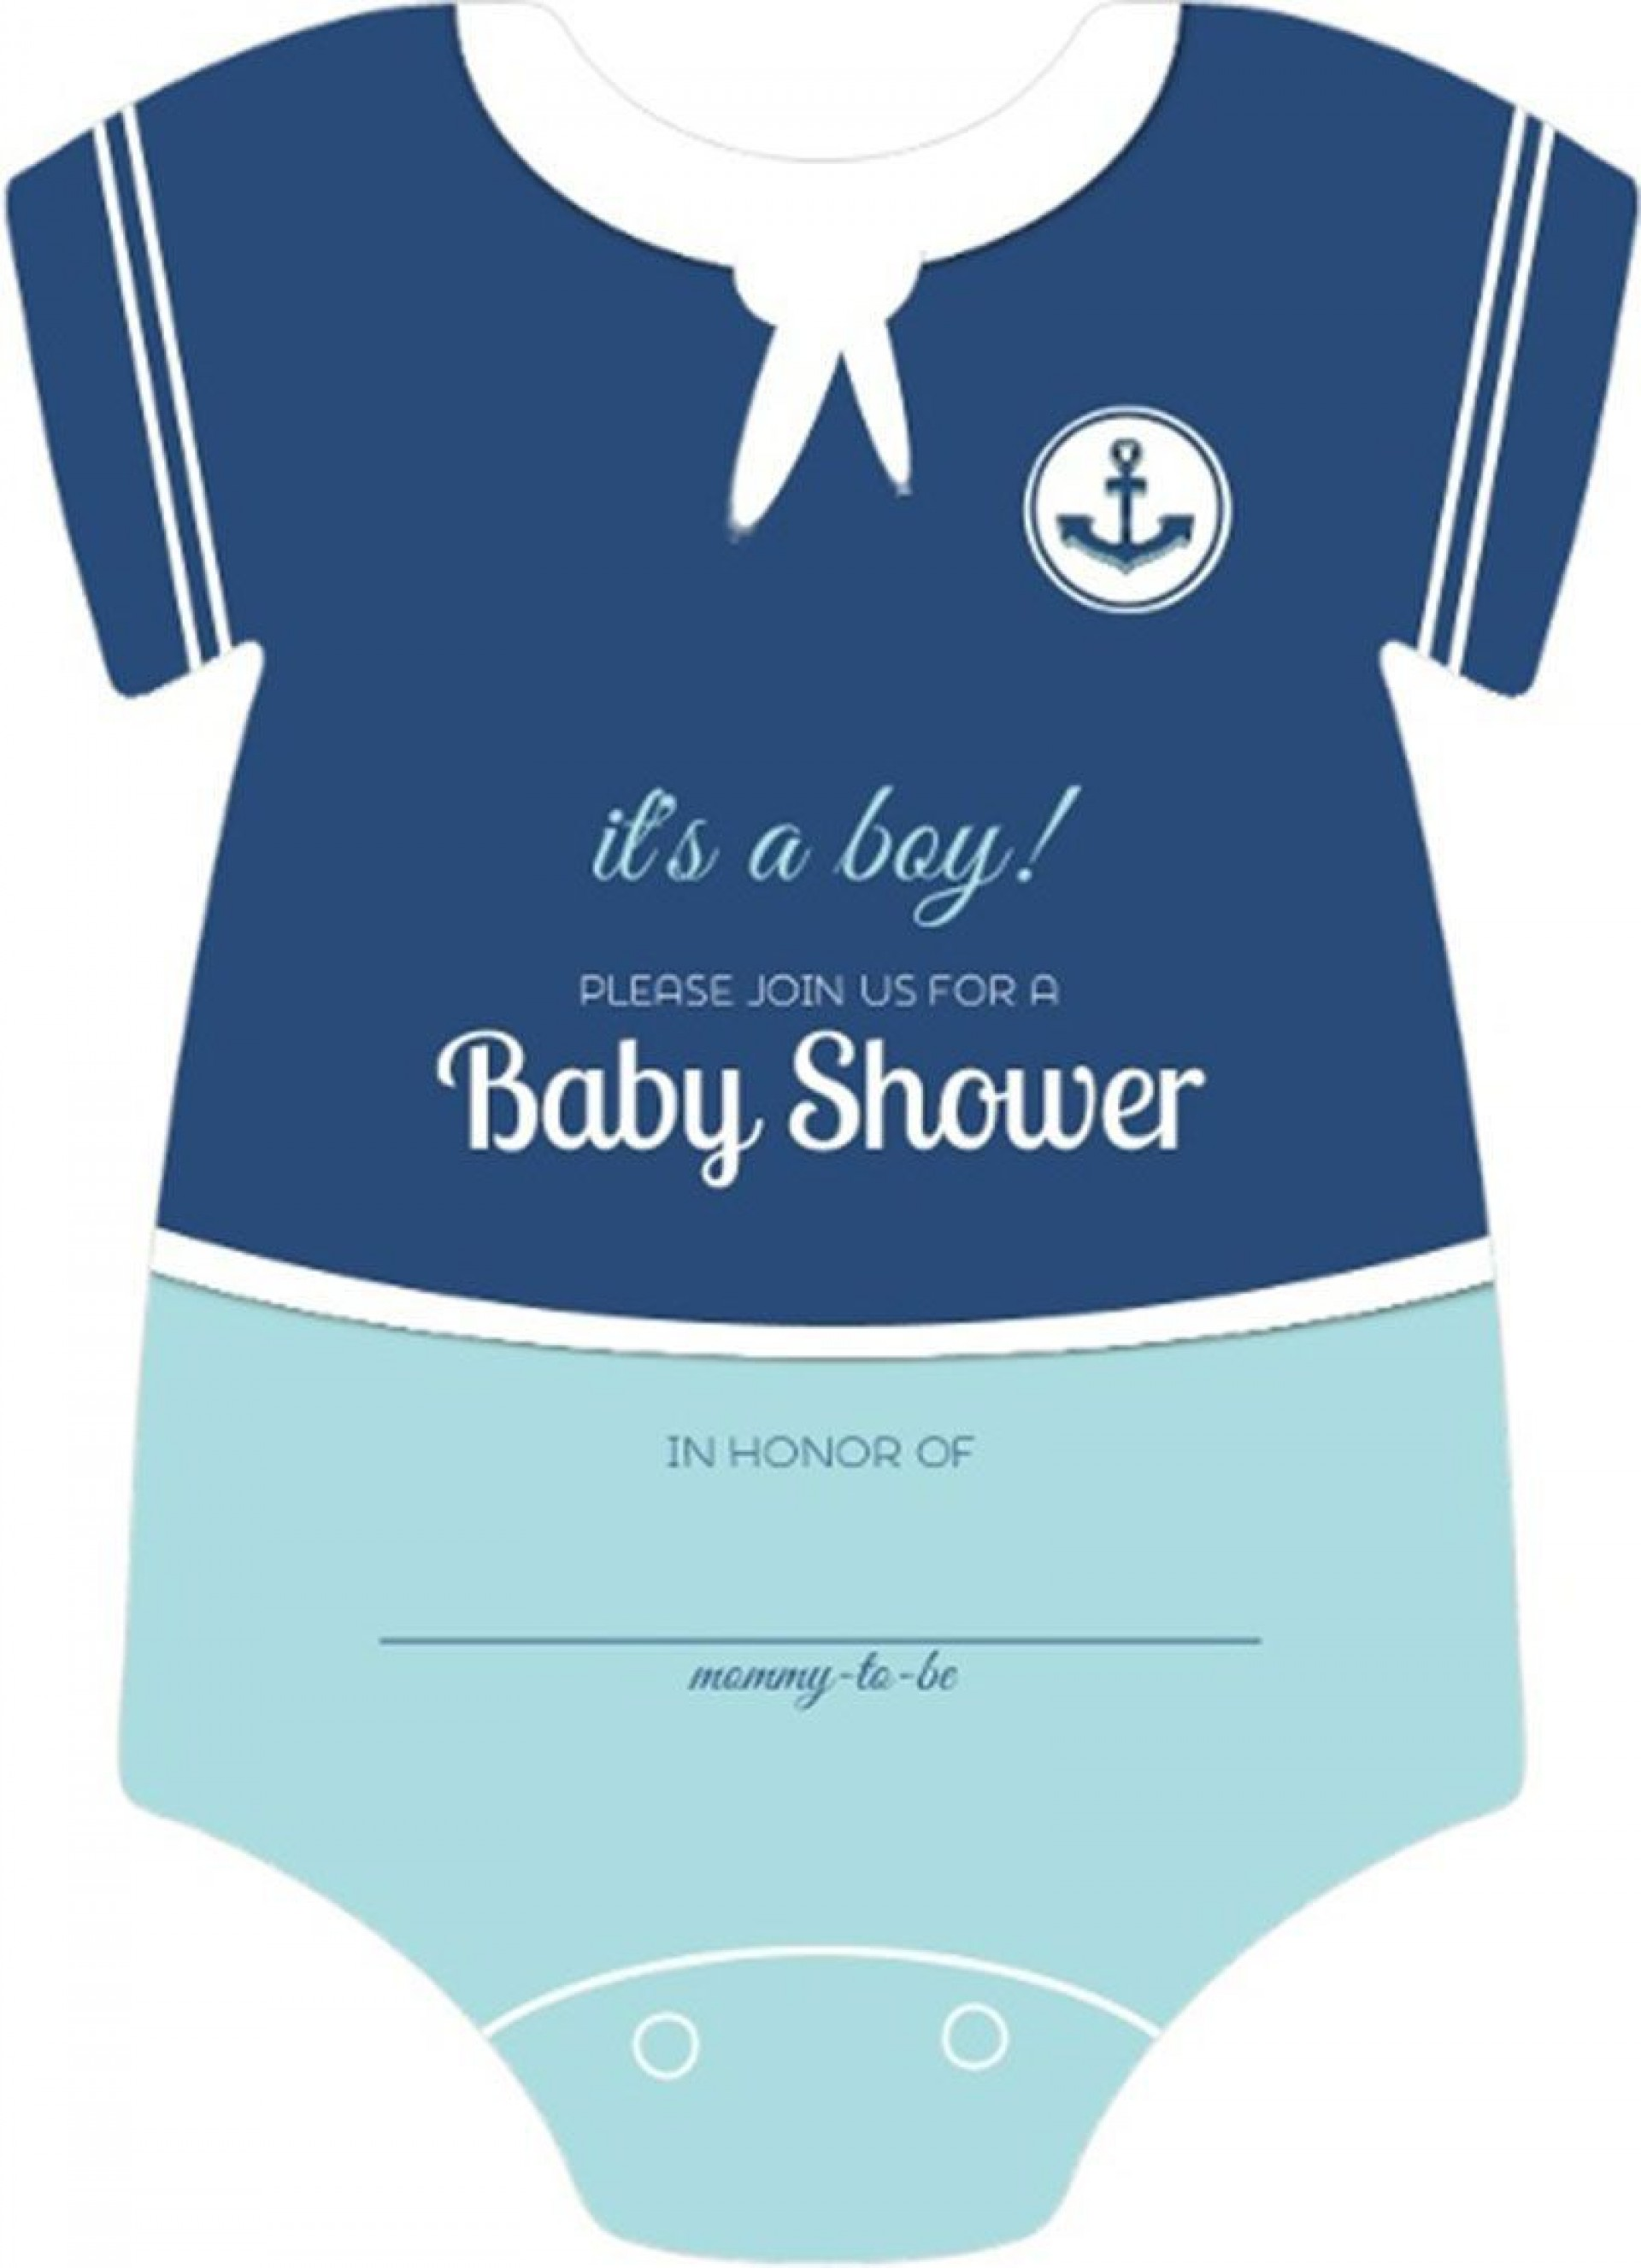 003 Exceptional Onesie Baby Shower Invitation Template Image  Free1920